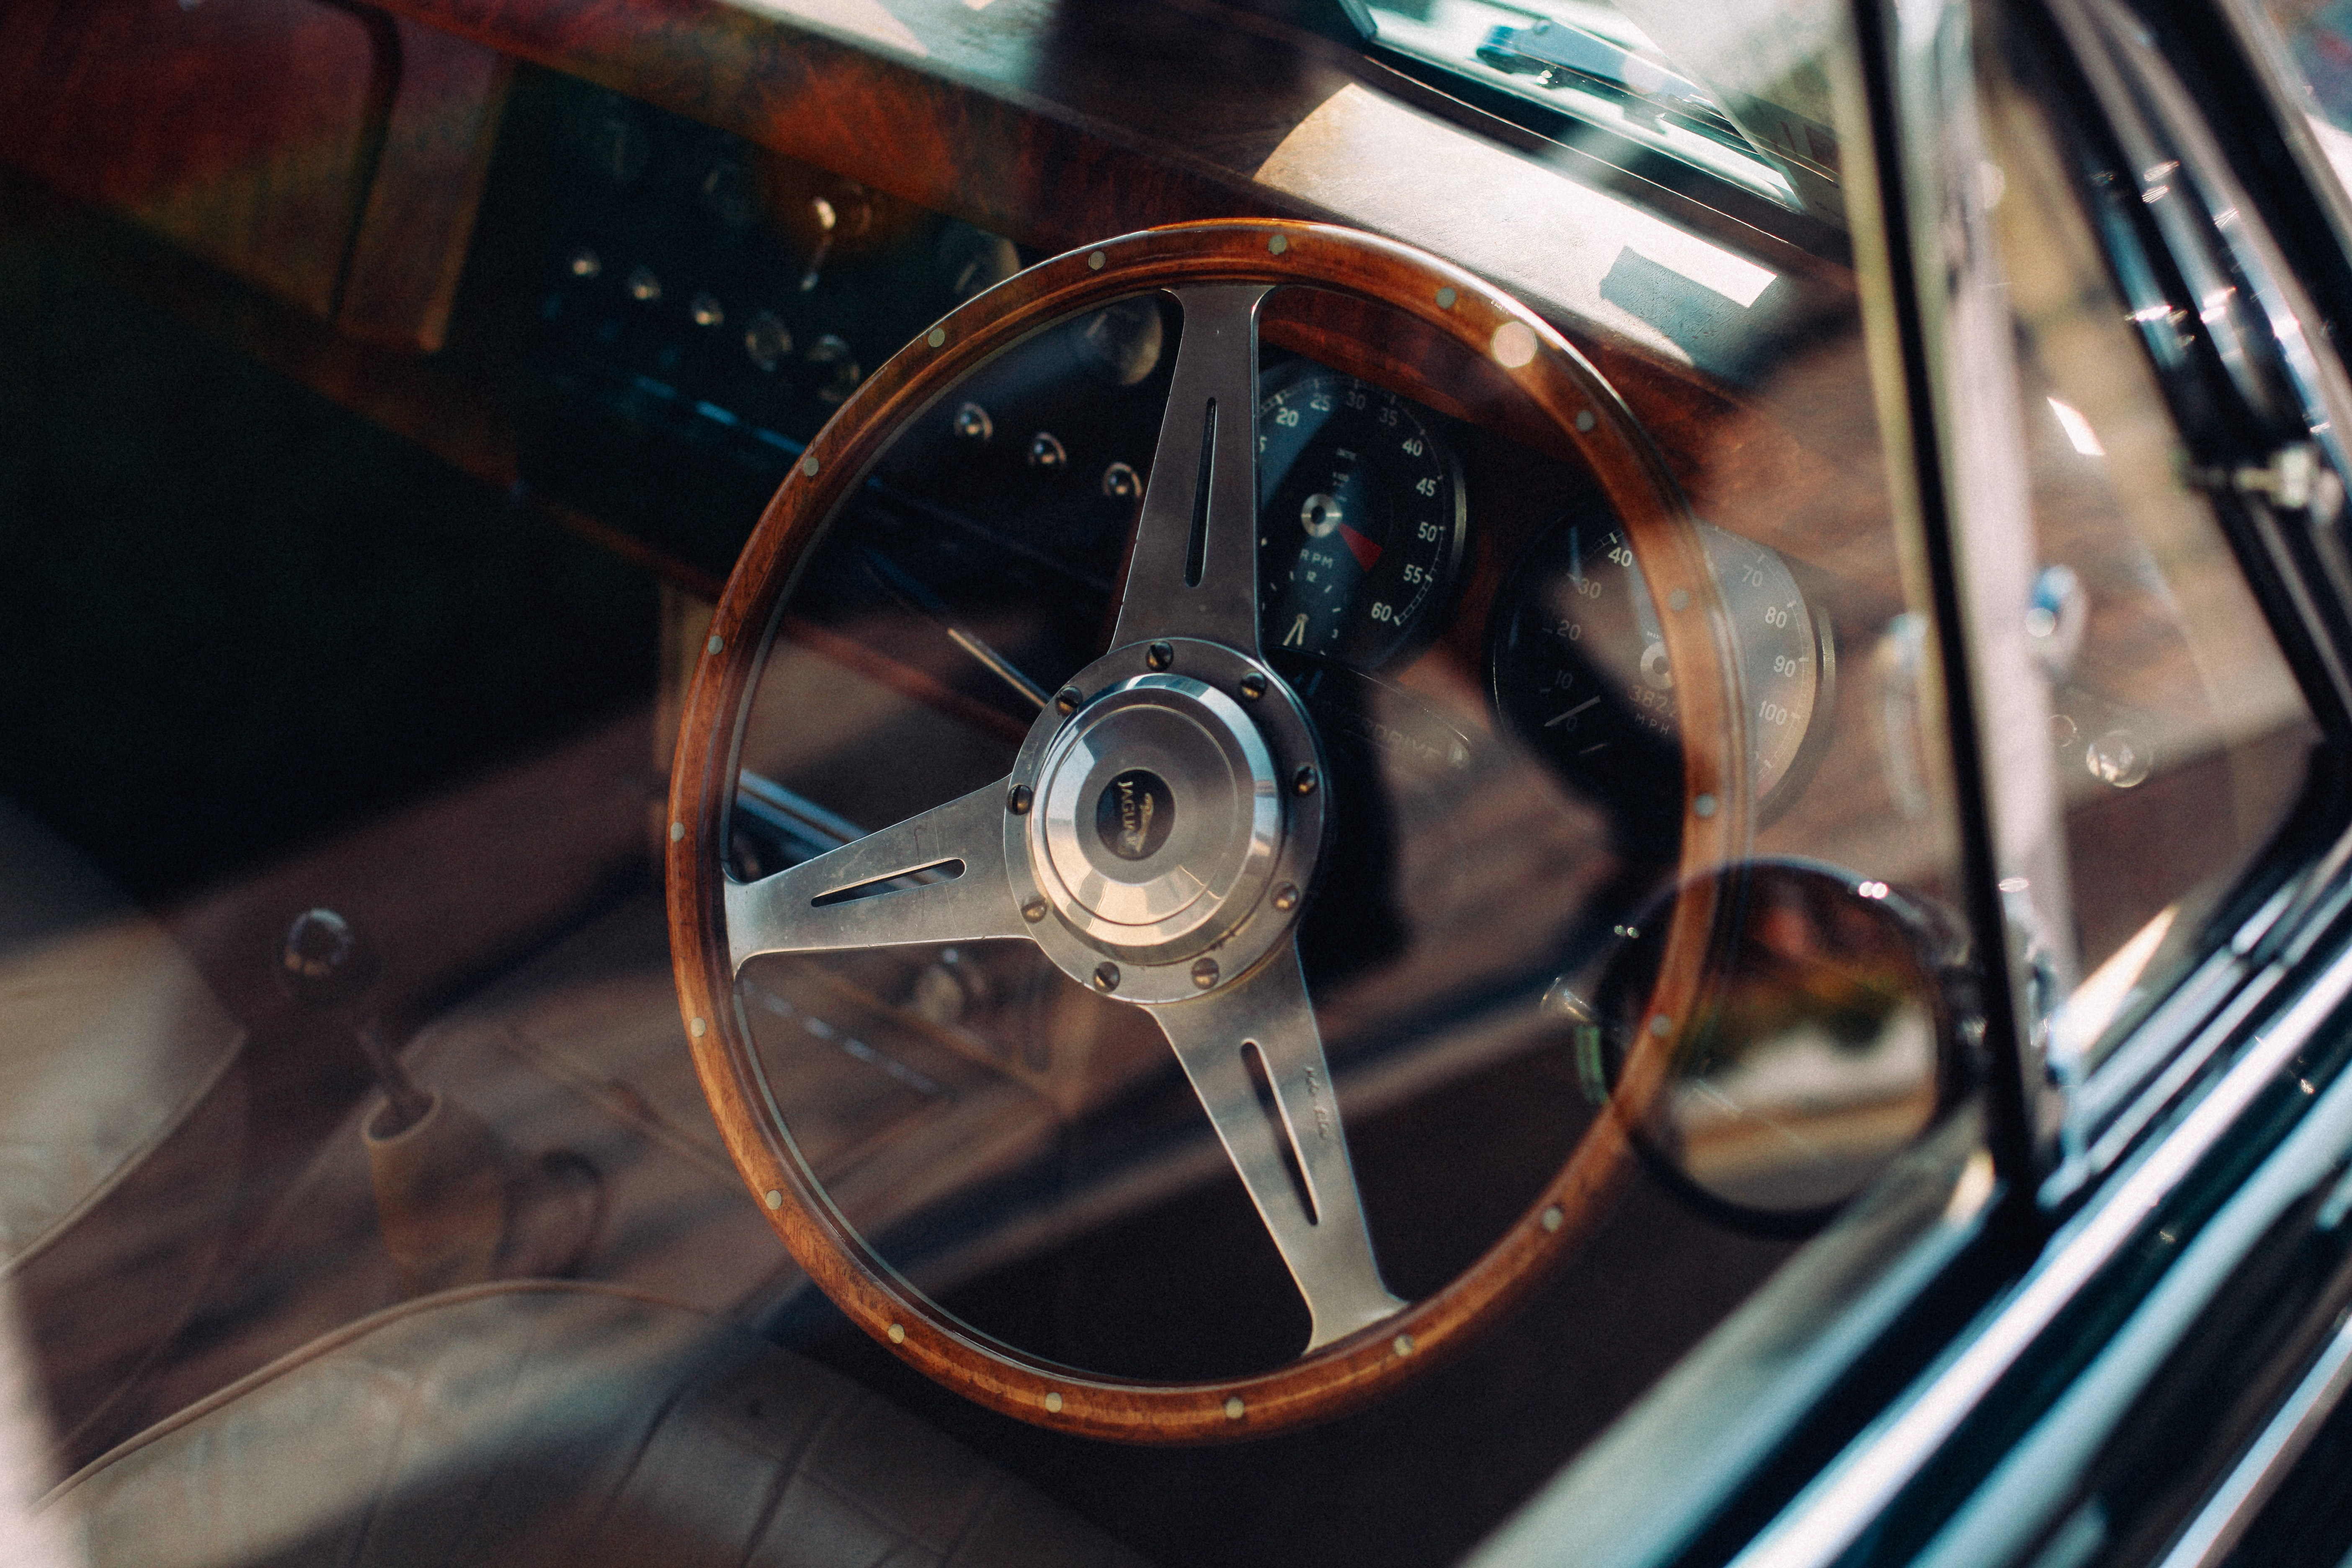 Vintage car interior with wooden steering wheel and window with reflection in London